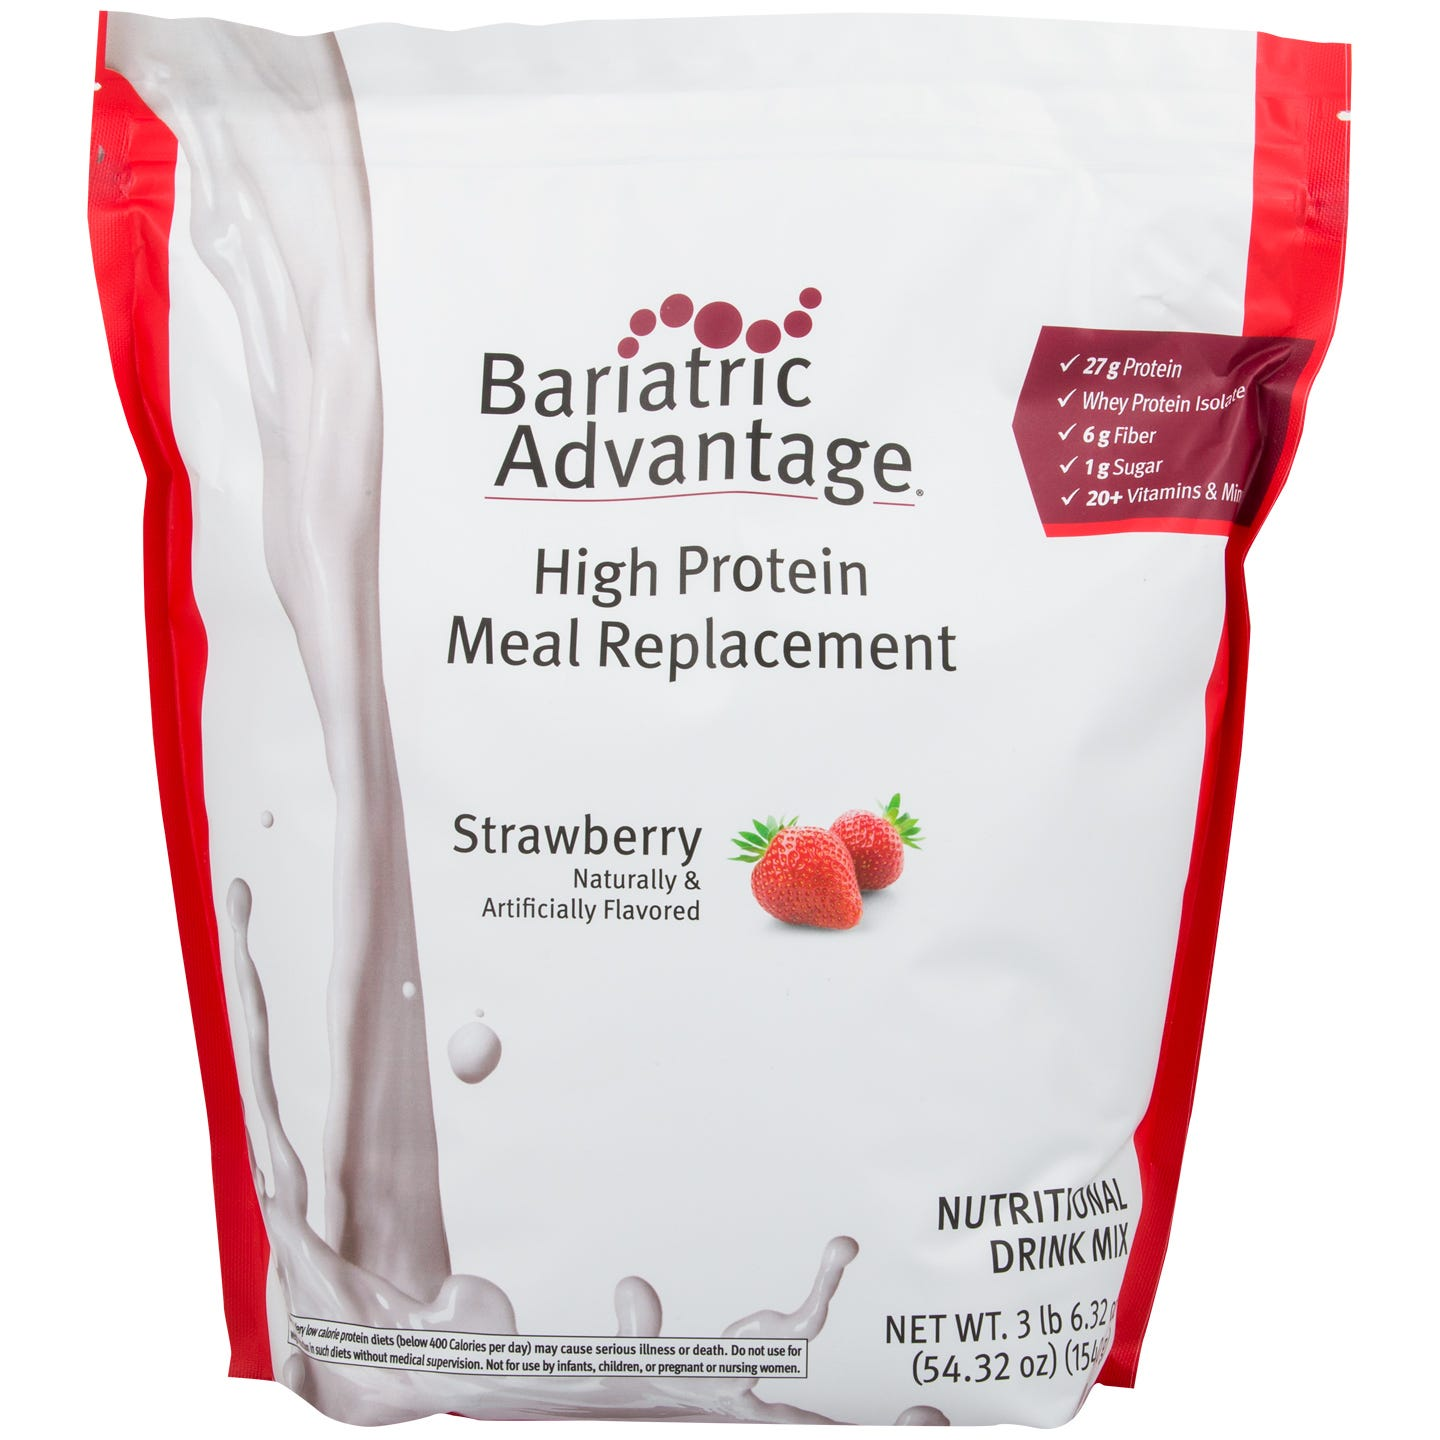 High Protein Meal Replacement Shakes Strawberry 35 Servings – Bariatric Advantage